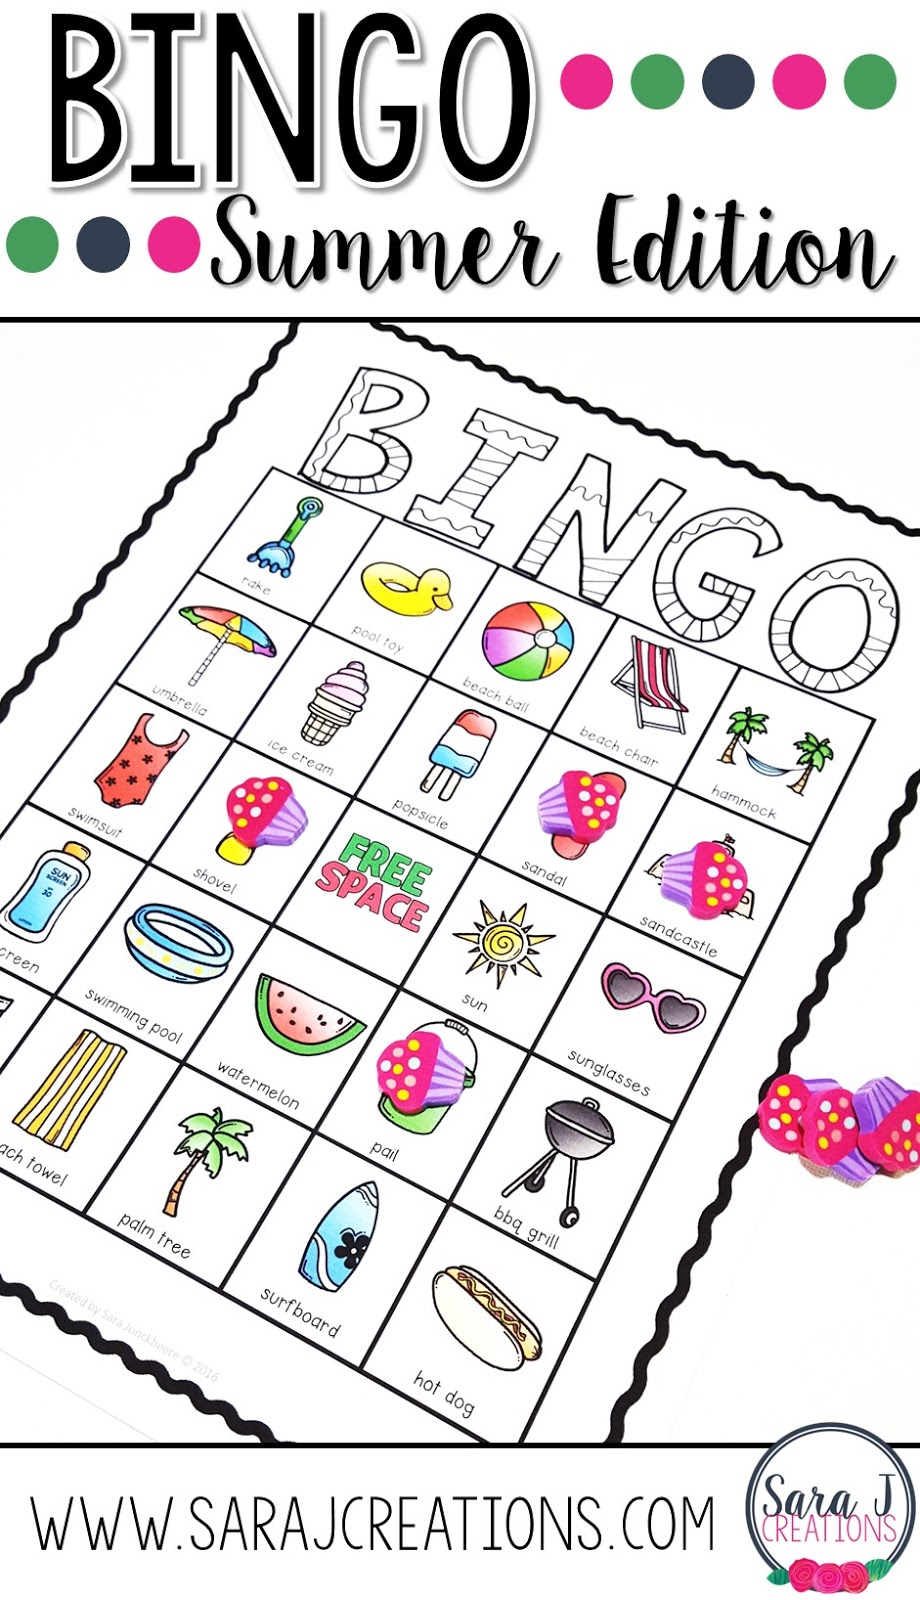 Need a little summer fun for kids?  How about summer bingo?  Perfect for the end of the school year or during the summer.  It includes 30 different boards in color and black and white.  Just print and play!